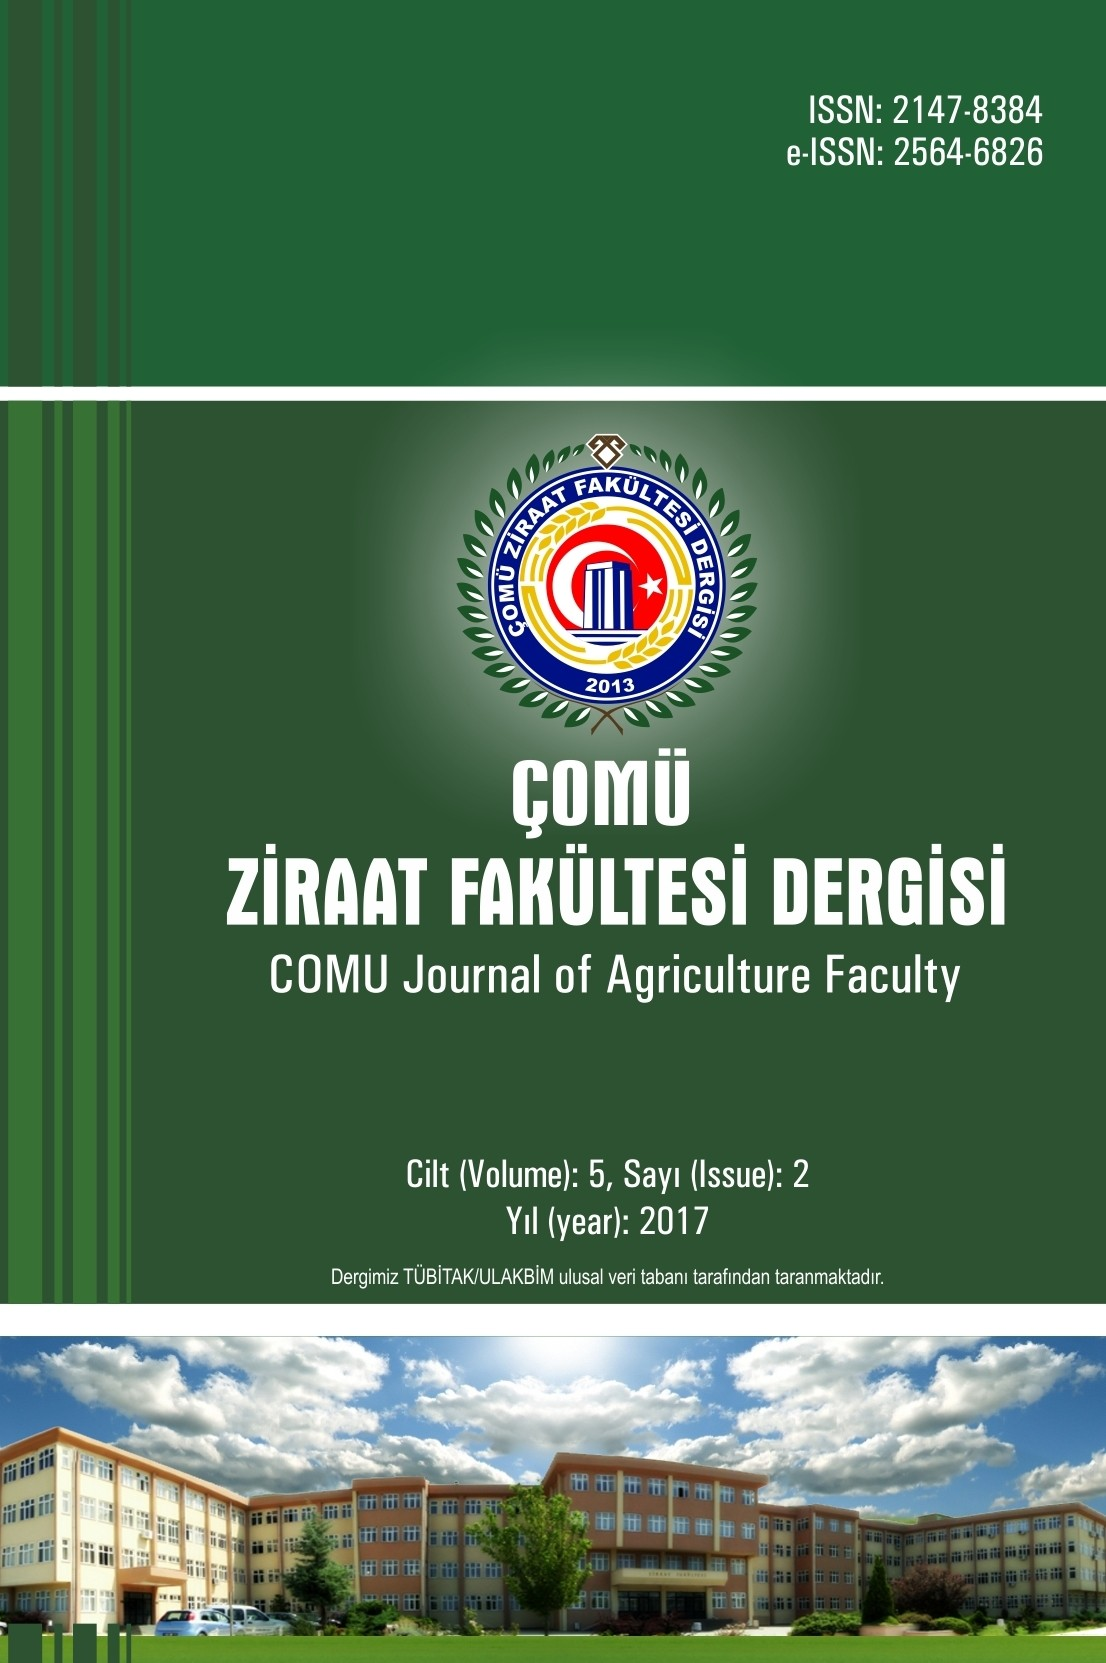 COMU Journal of Agriculture Faculty